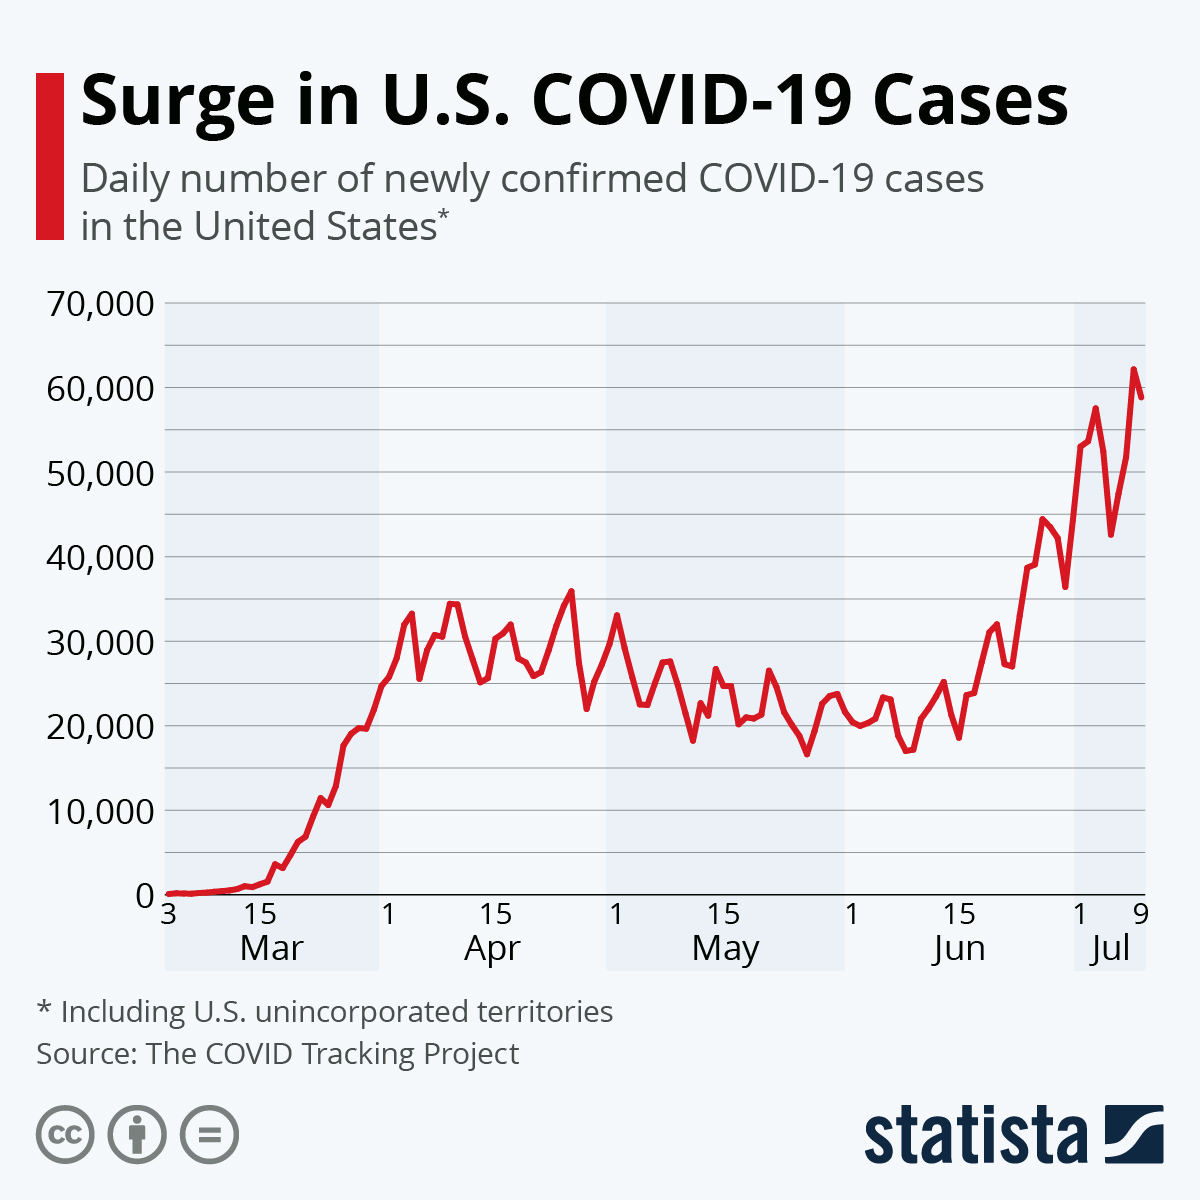 Surge in U.S. COVID-19 Cases #infographic